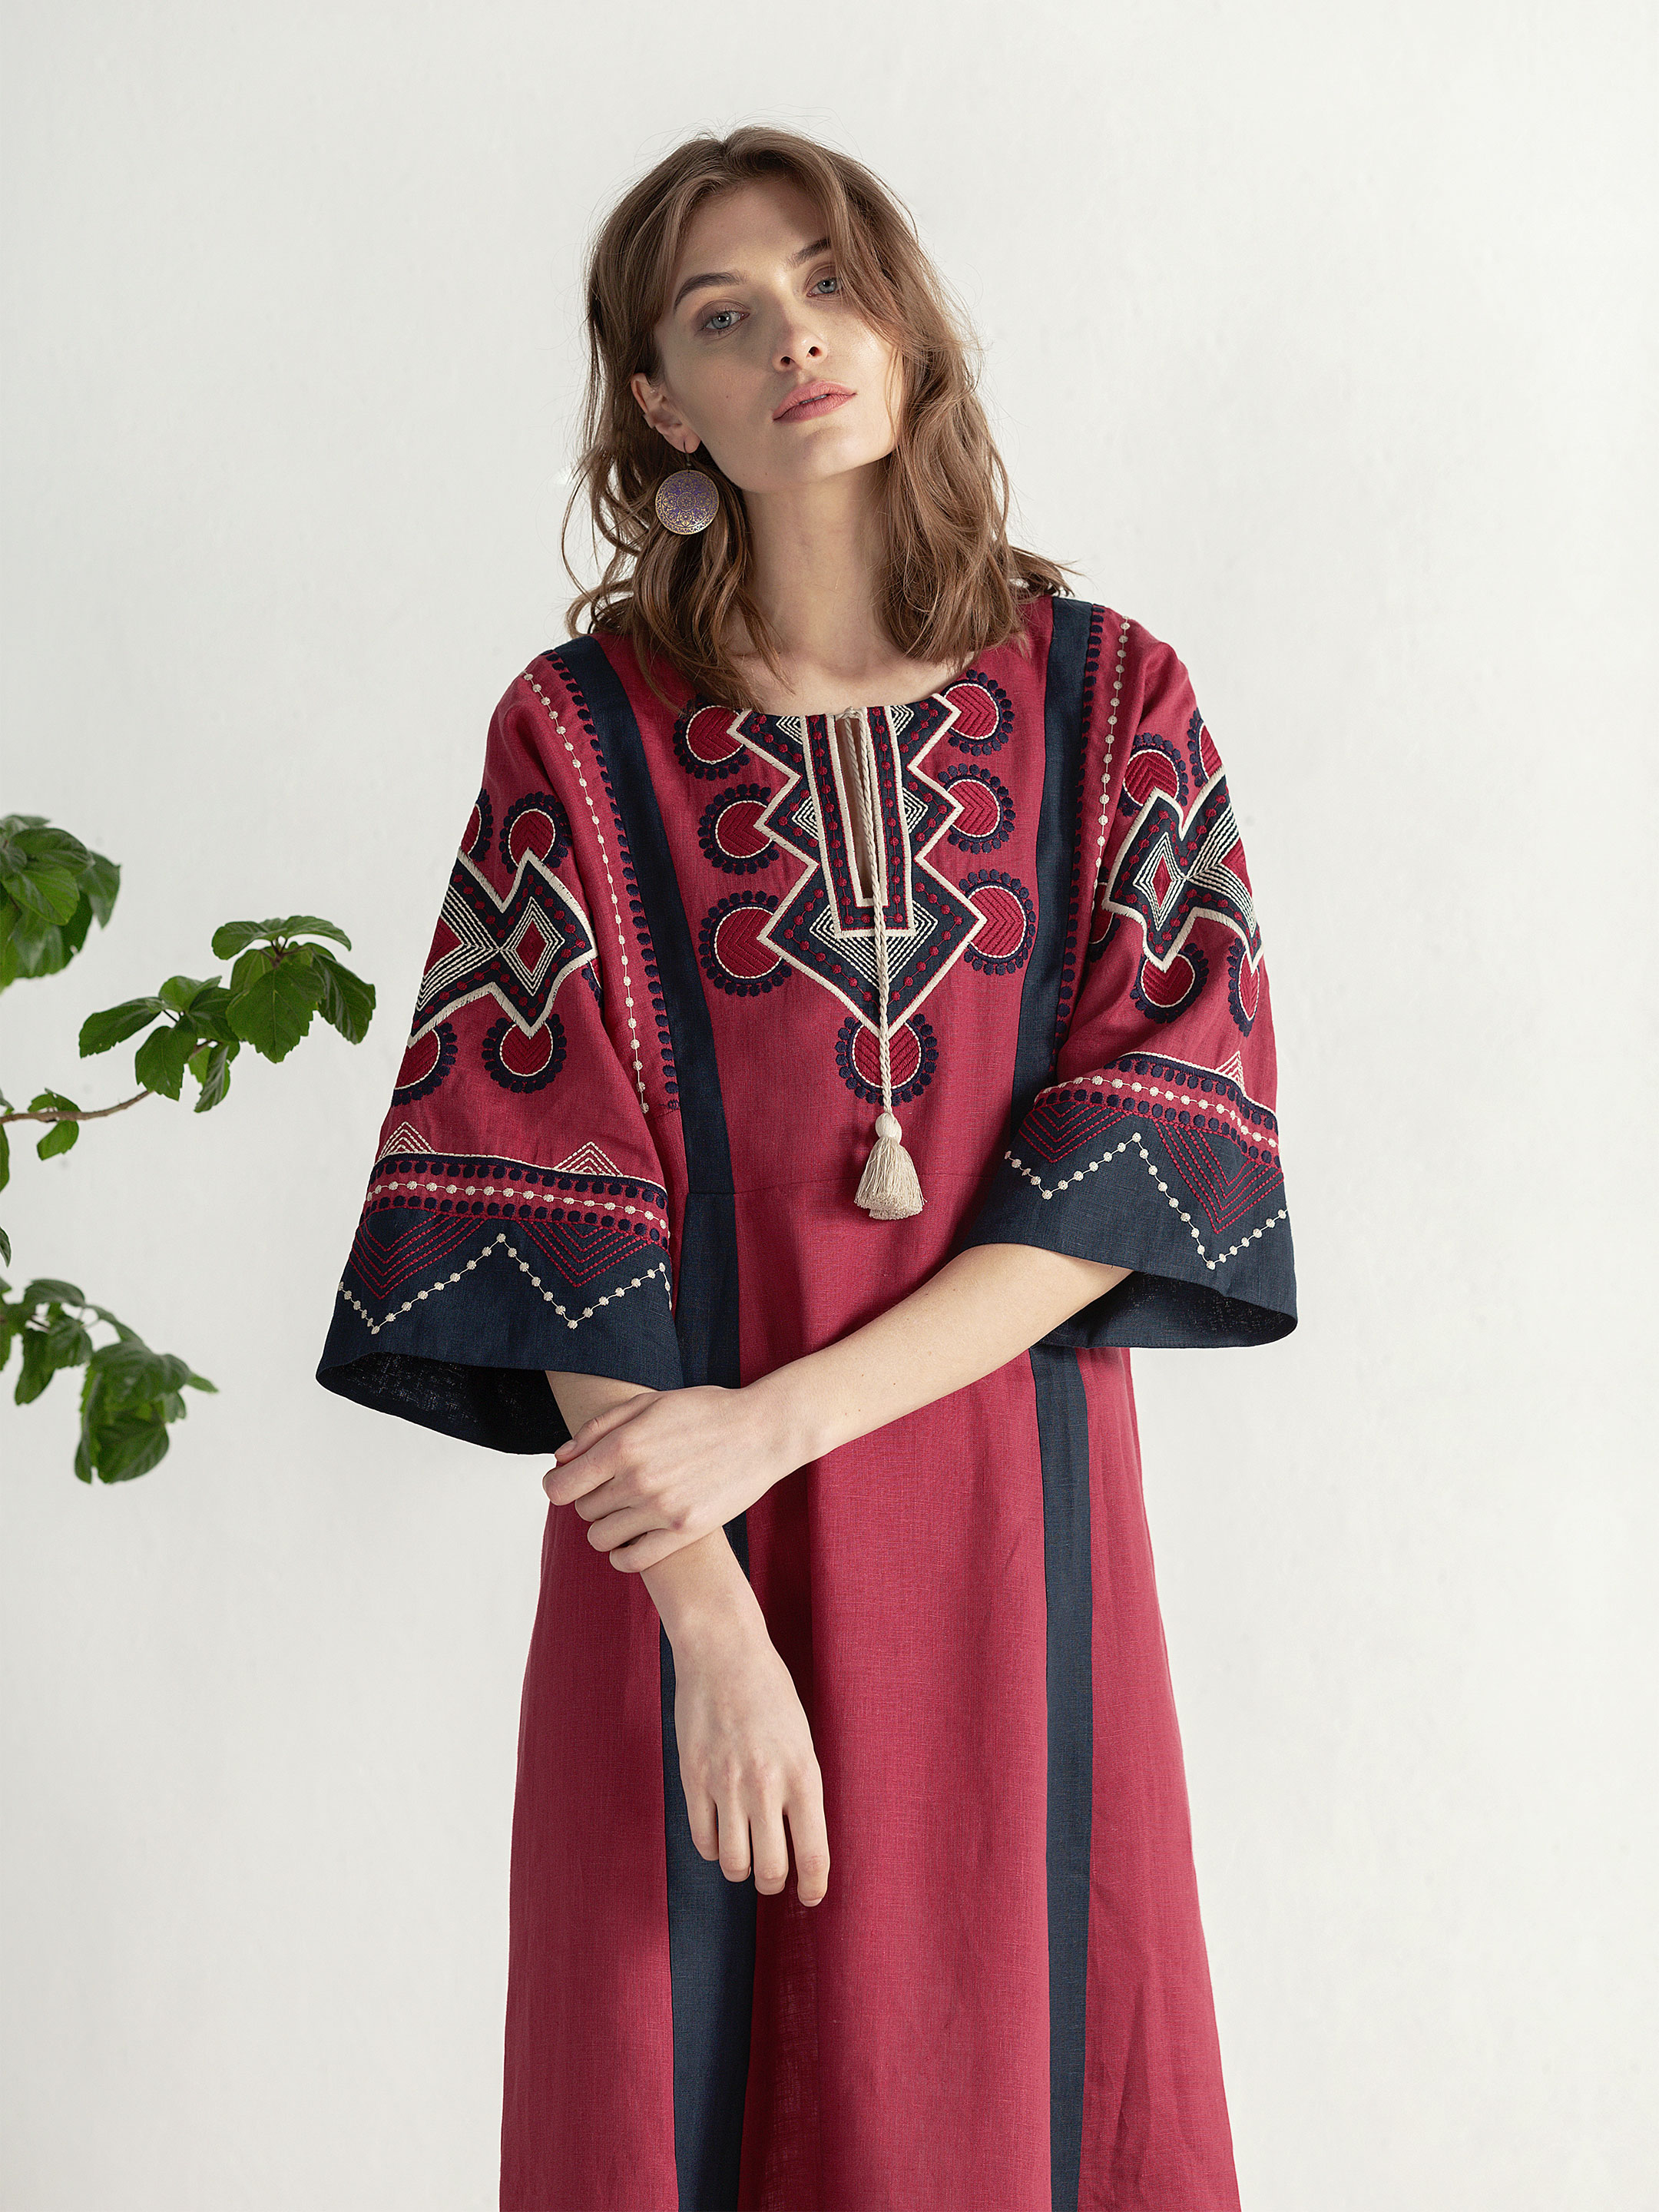 Boho dress of free robe with embroidery Temple2 9